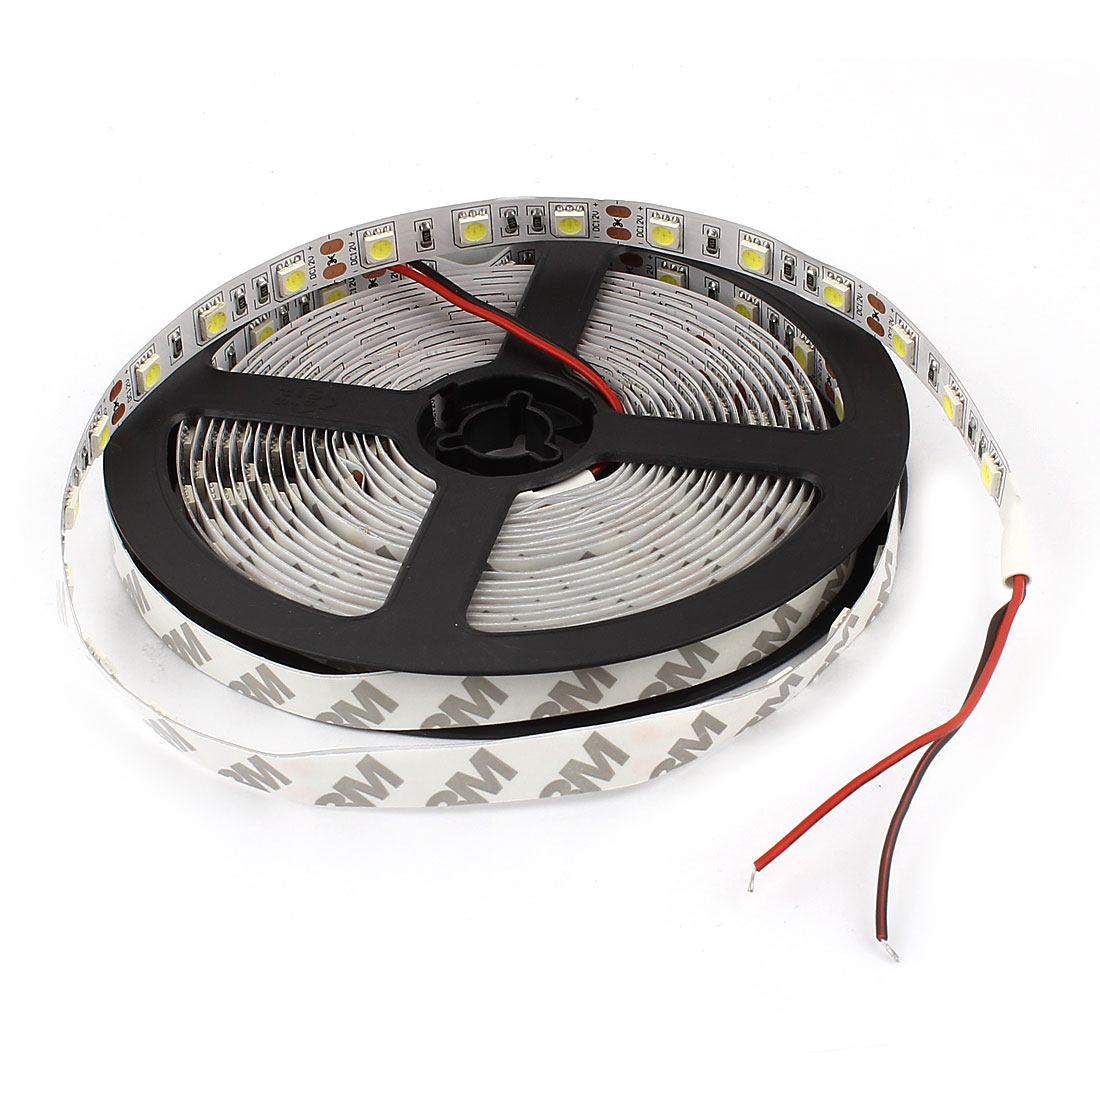 5m 5050 SMD 300 LEDs Non-Waterproof Flexible White LED Strip Light